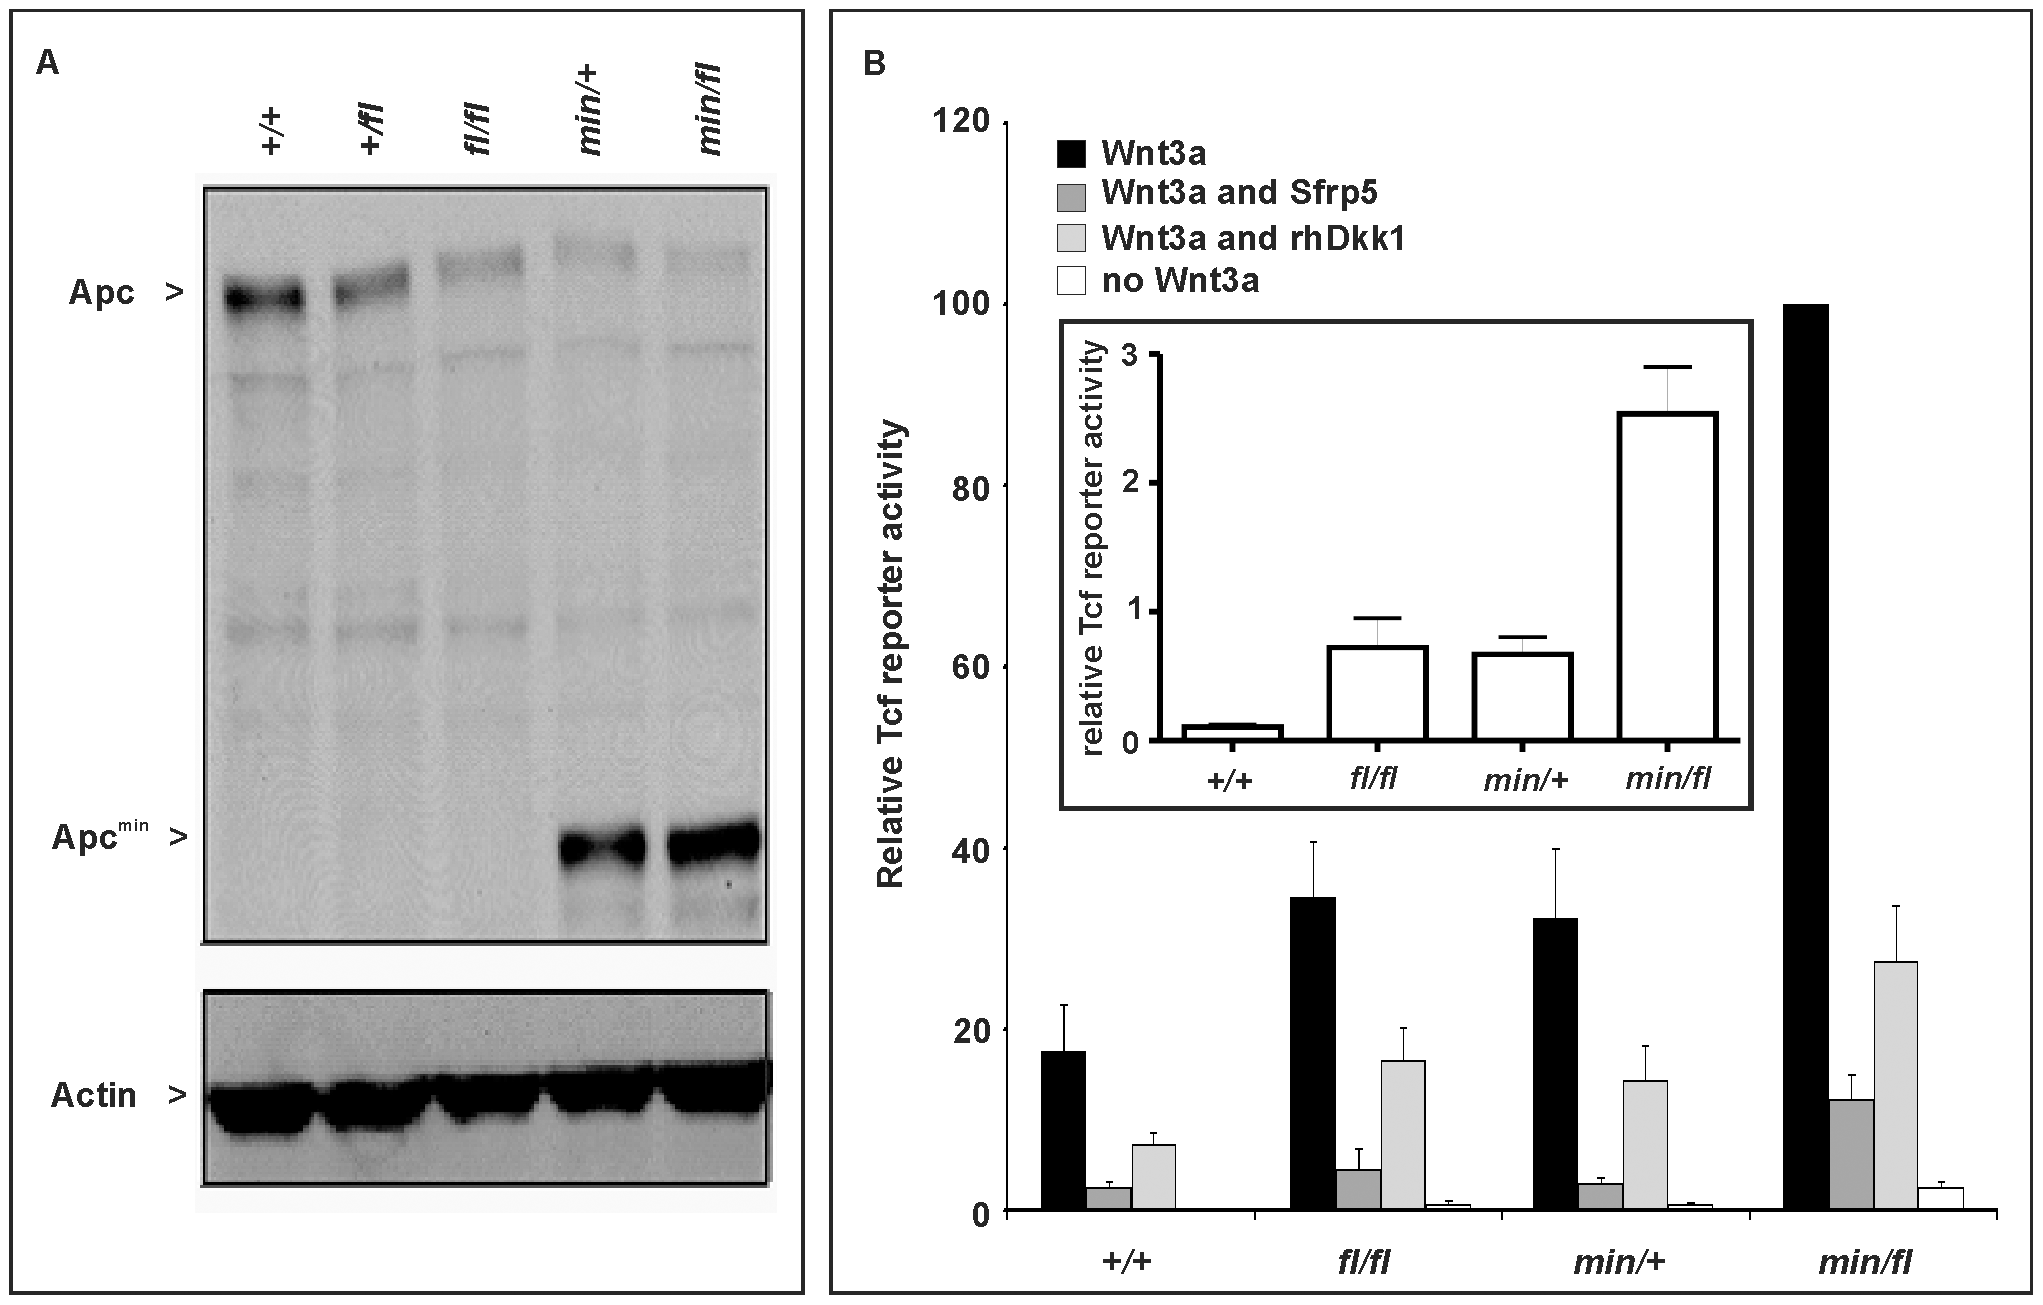 Apc protein expression levels and Wnt/β-catenin pathway activation in primary mouse embryonic fibroblasts (MEFs).